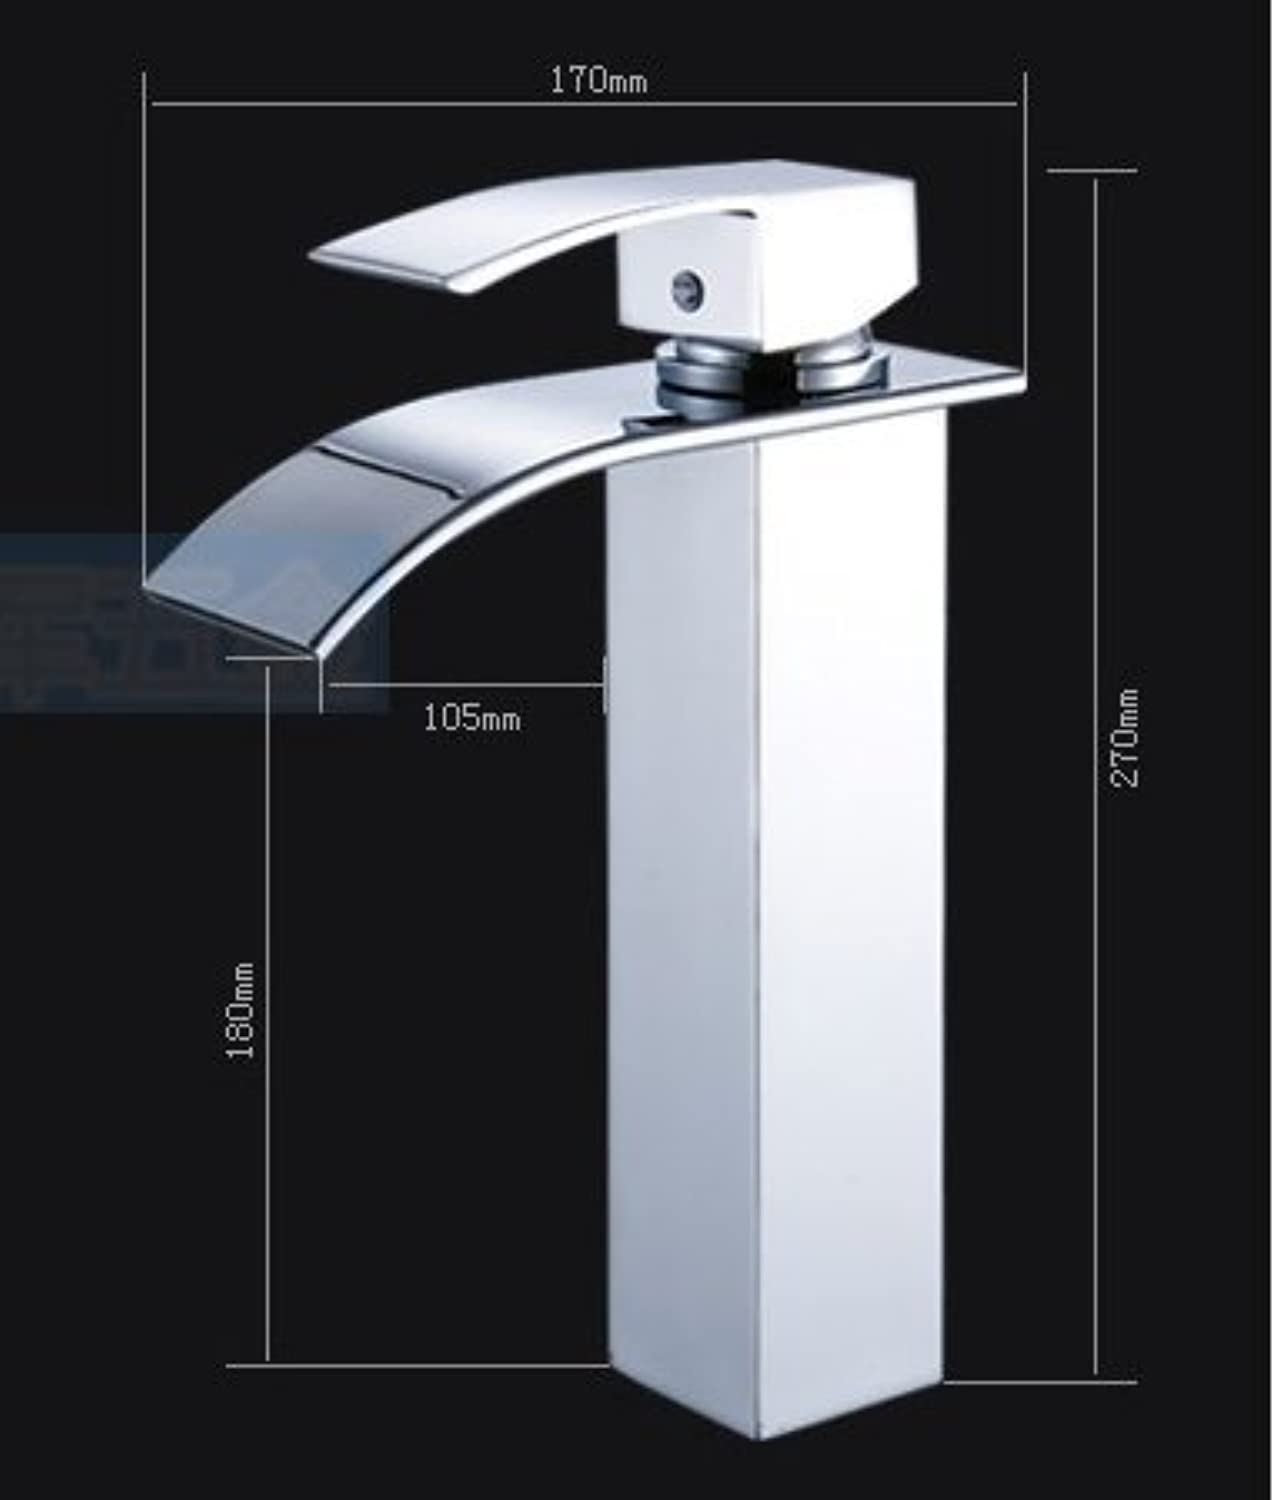 Cold Water Faucet Waterfall & Fully Heat Copper Higher of The Platform of Bath Rooms Bath Rooms Sinks Faucet Sinks, Silvery, B